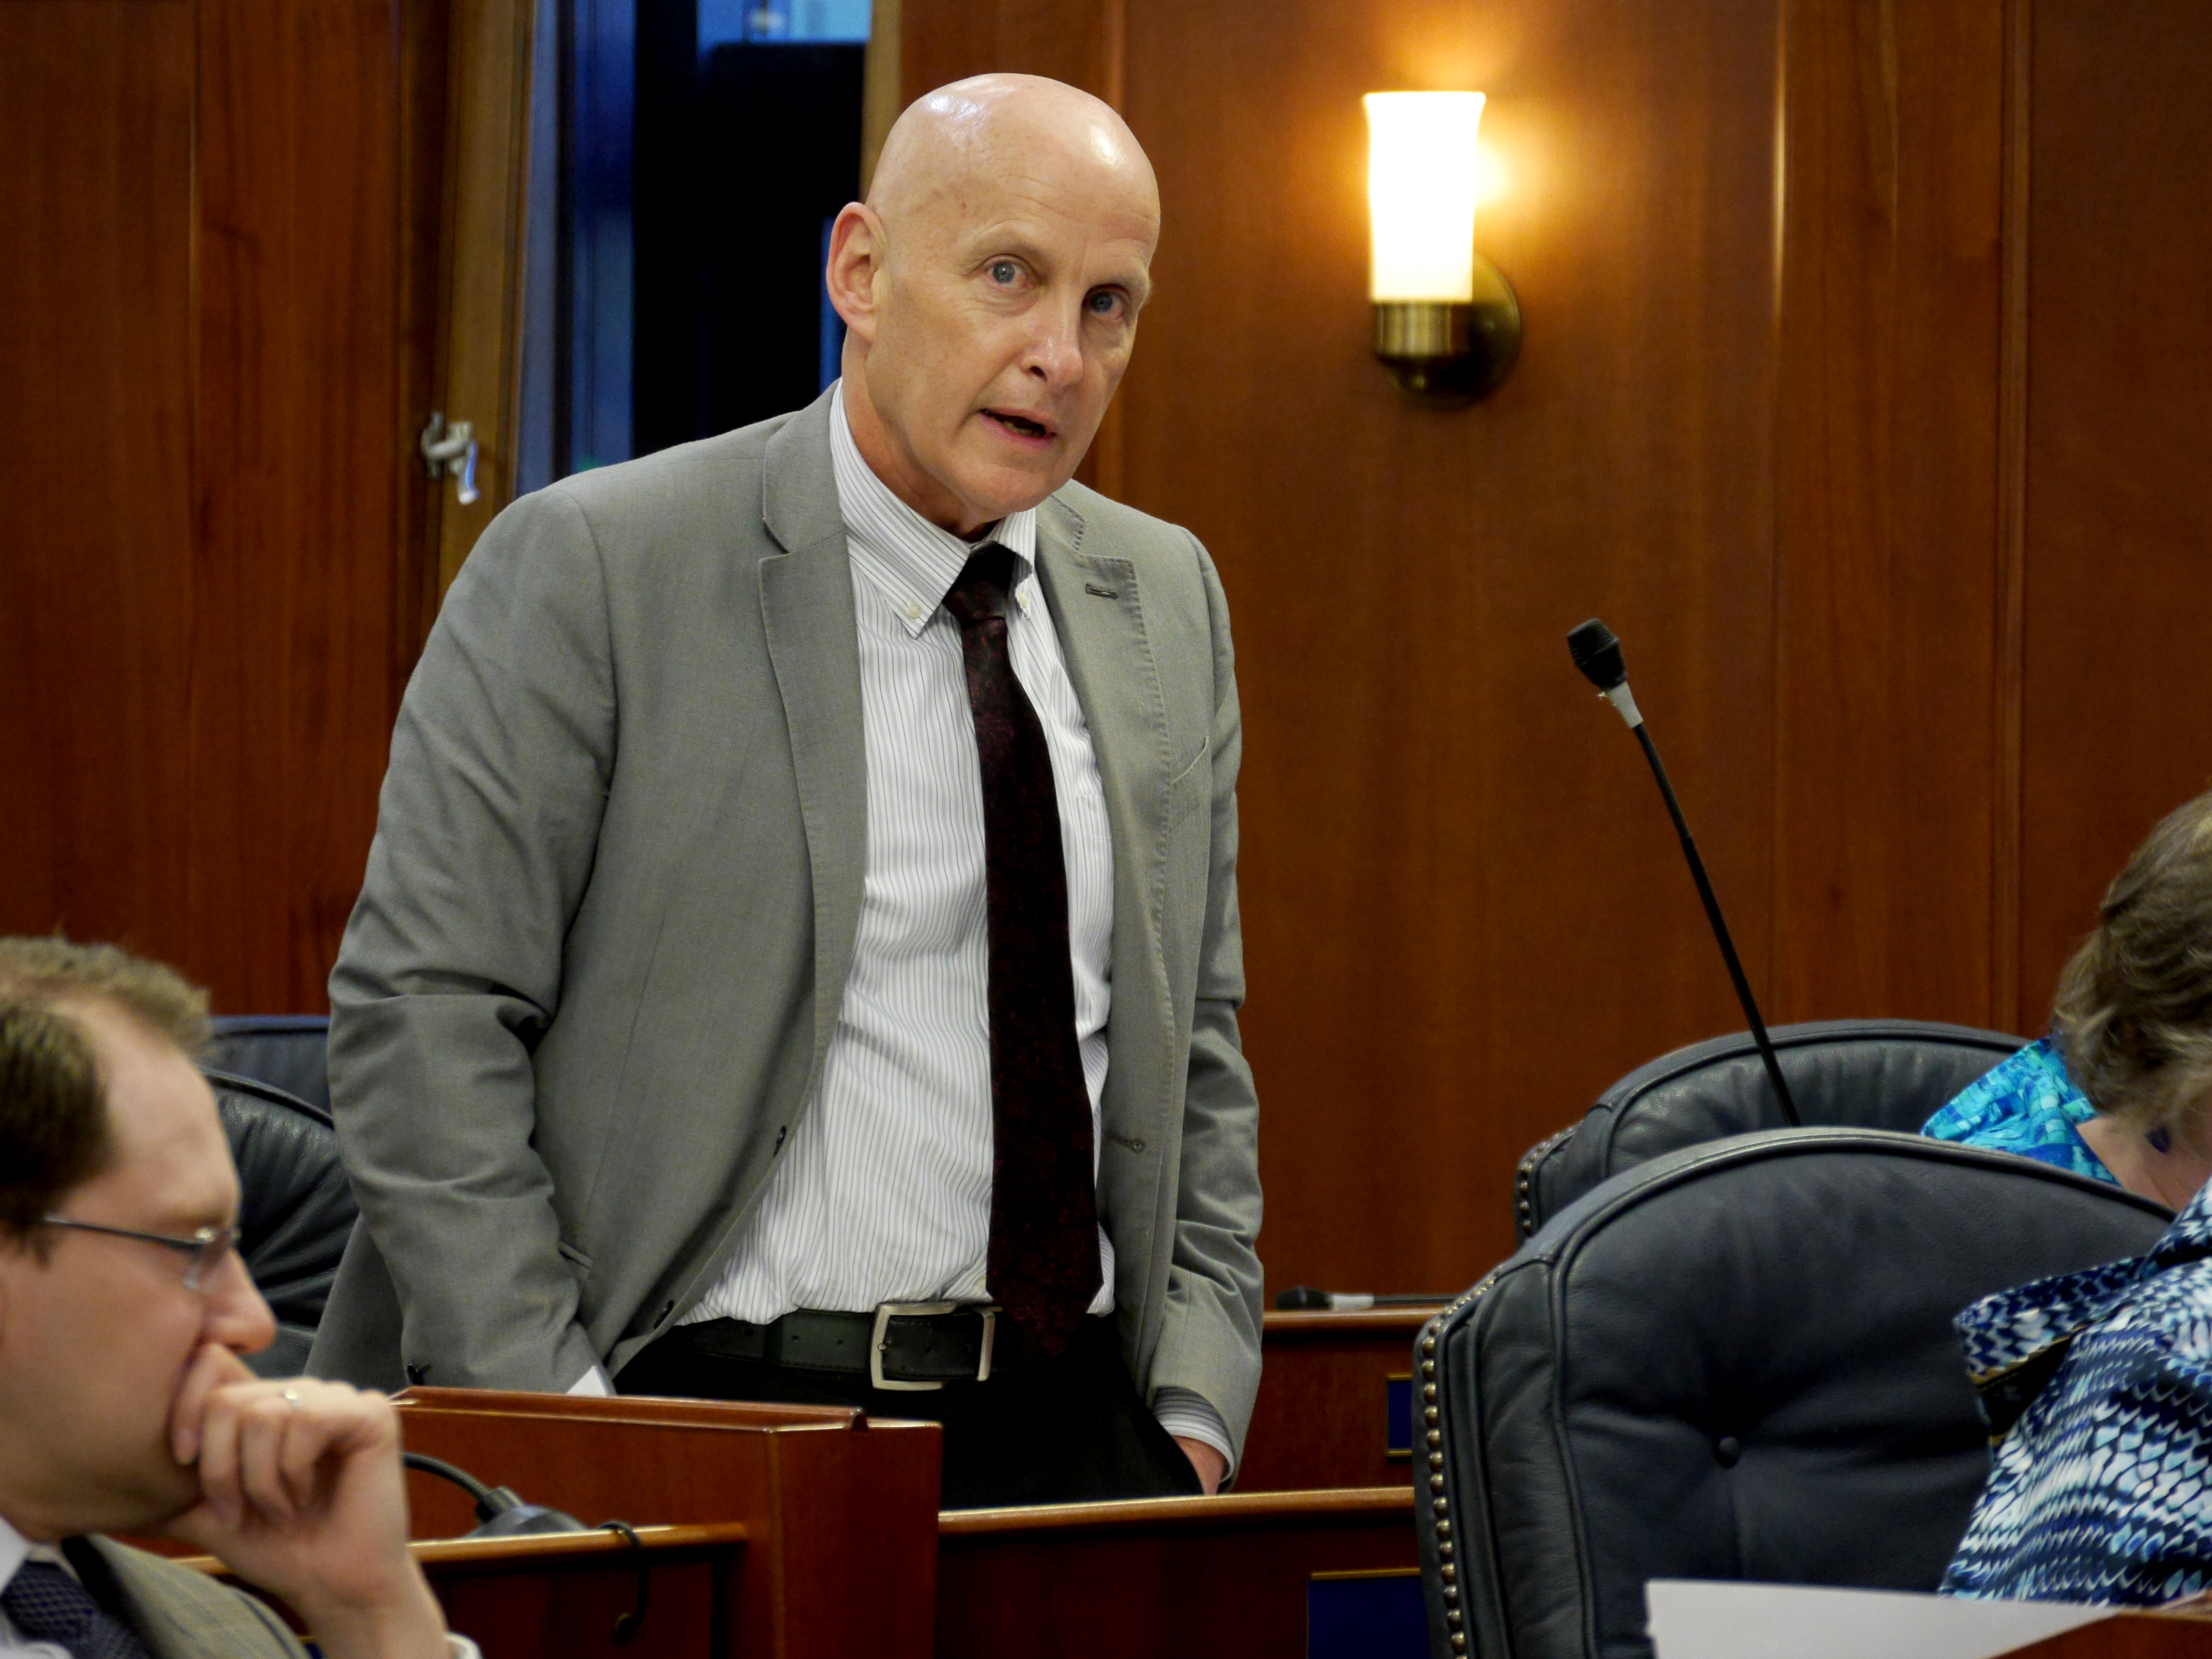 Rep. Dan Ortiz, I-Ketchikan, speaks during a House floor session in Juneau on March 29, 2019.